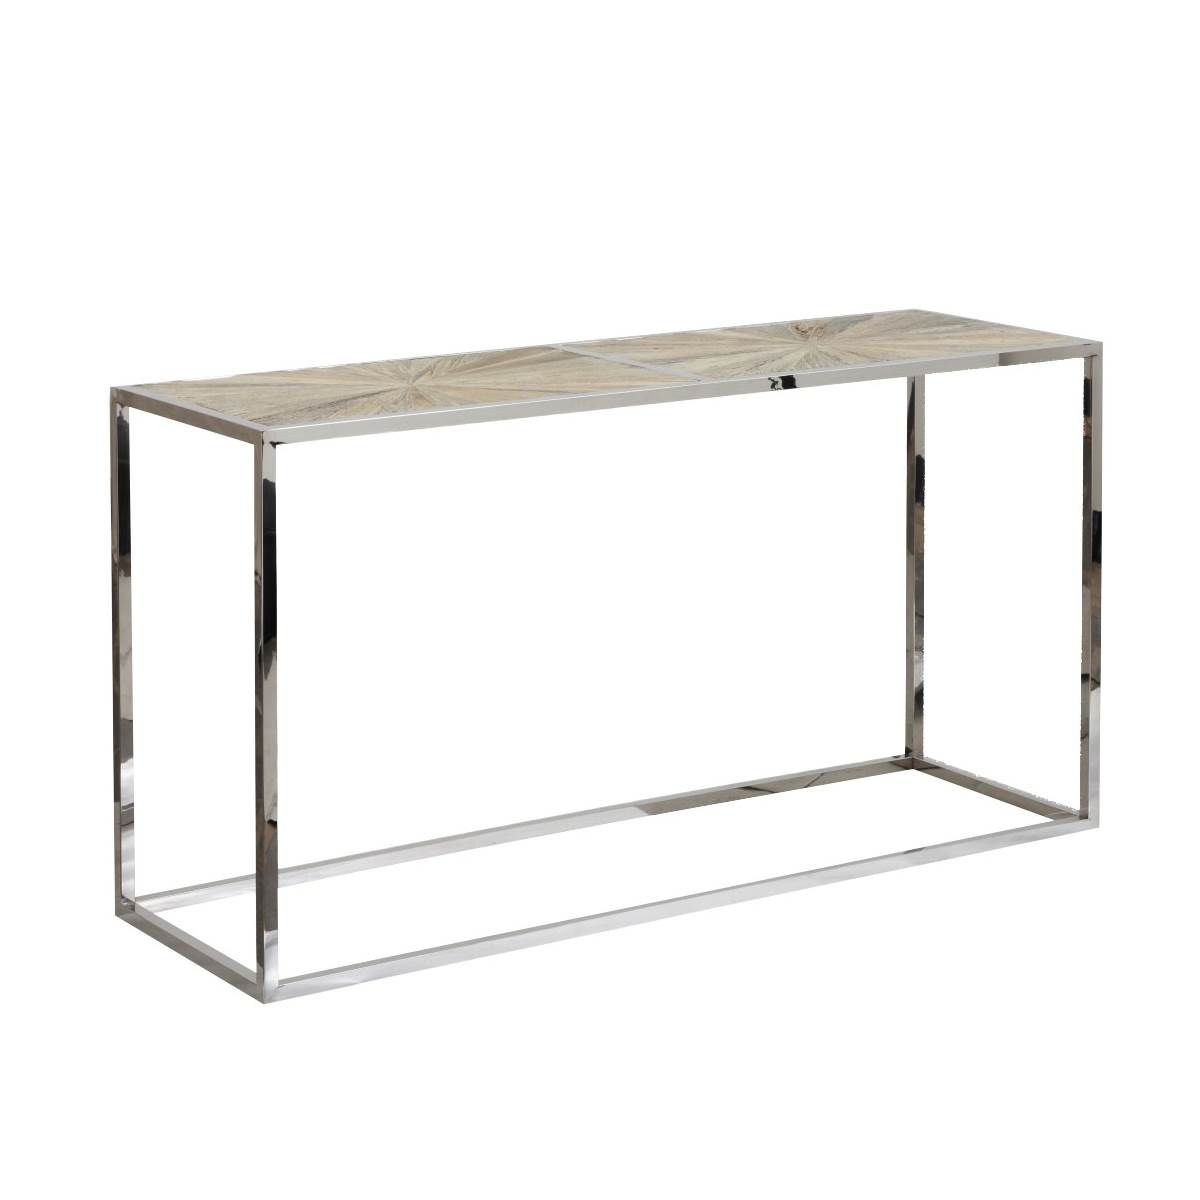 Parquet Console Table | Marshall | Pinterest Intended For Parsons Grey Marble Top & Brass Base 48X16 Console Tables (Photo 9 of 30)